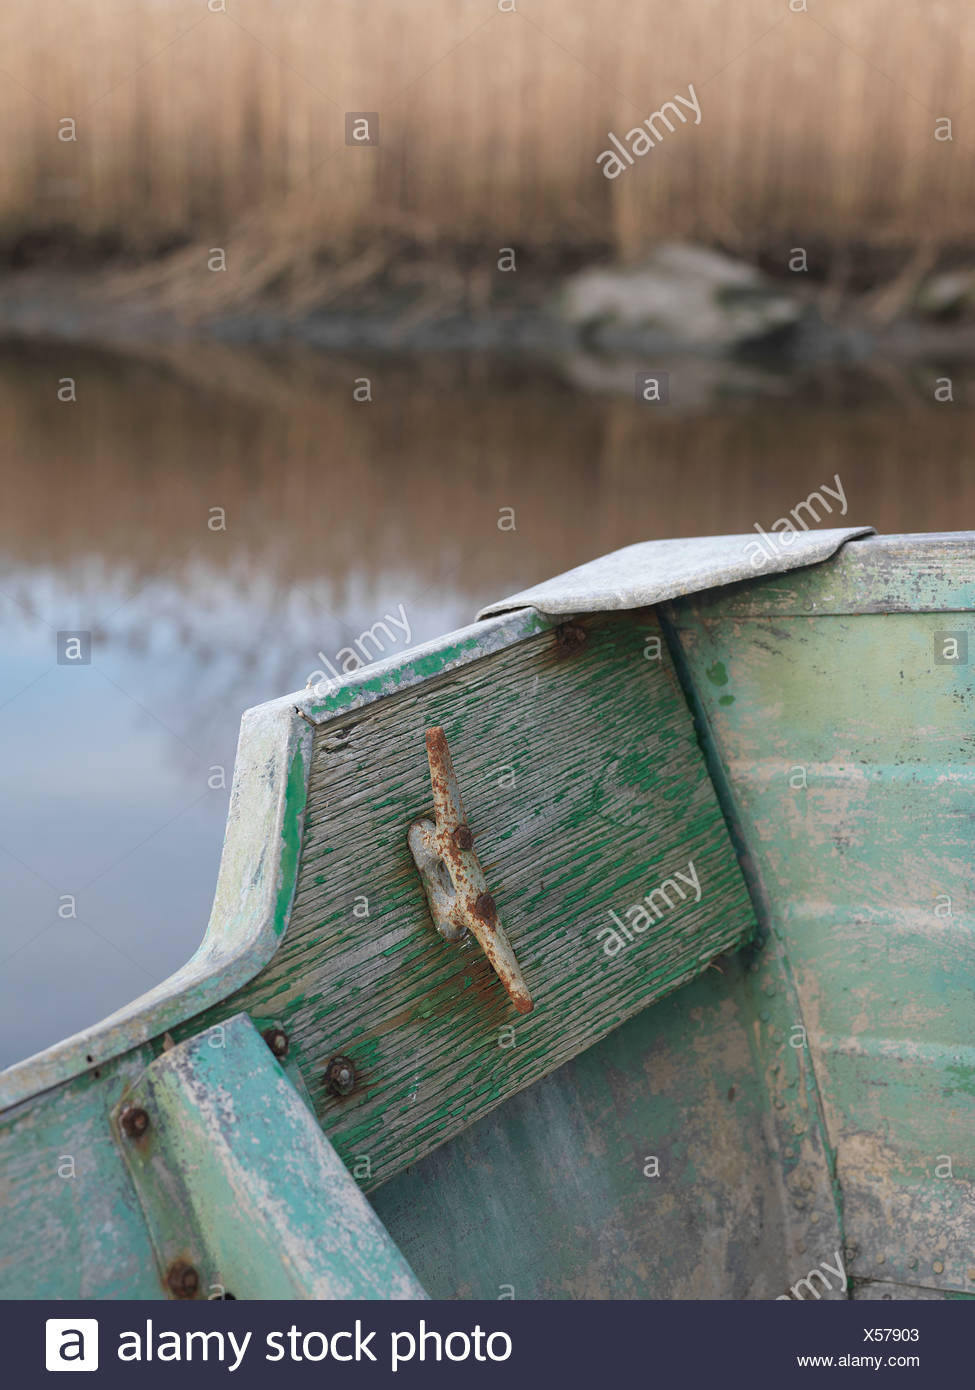 old, patina, flaking, paint, green, blue, rivets, boat, rowing, aluminum, edge, rear, rust, age, color, edge, rear, river, - Stock Image